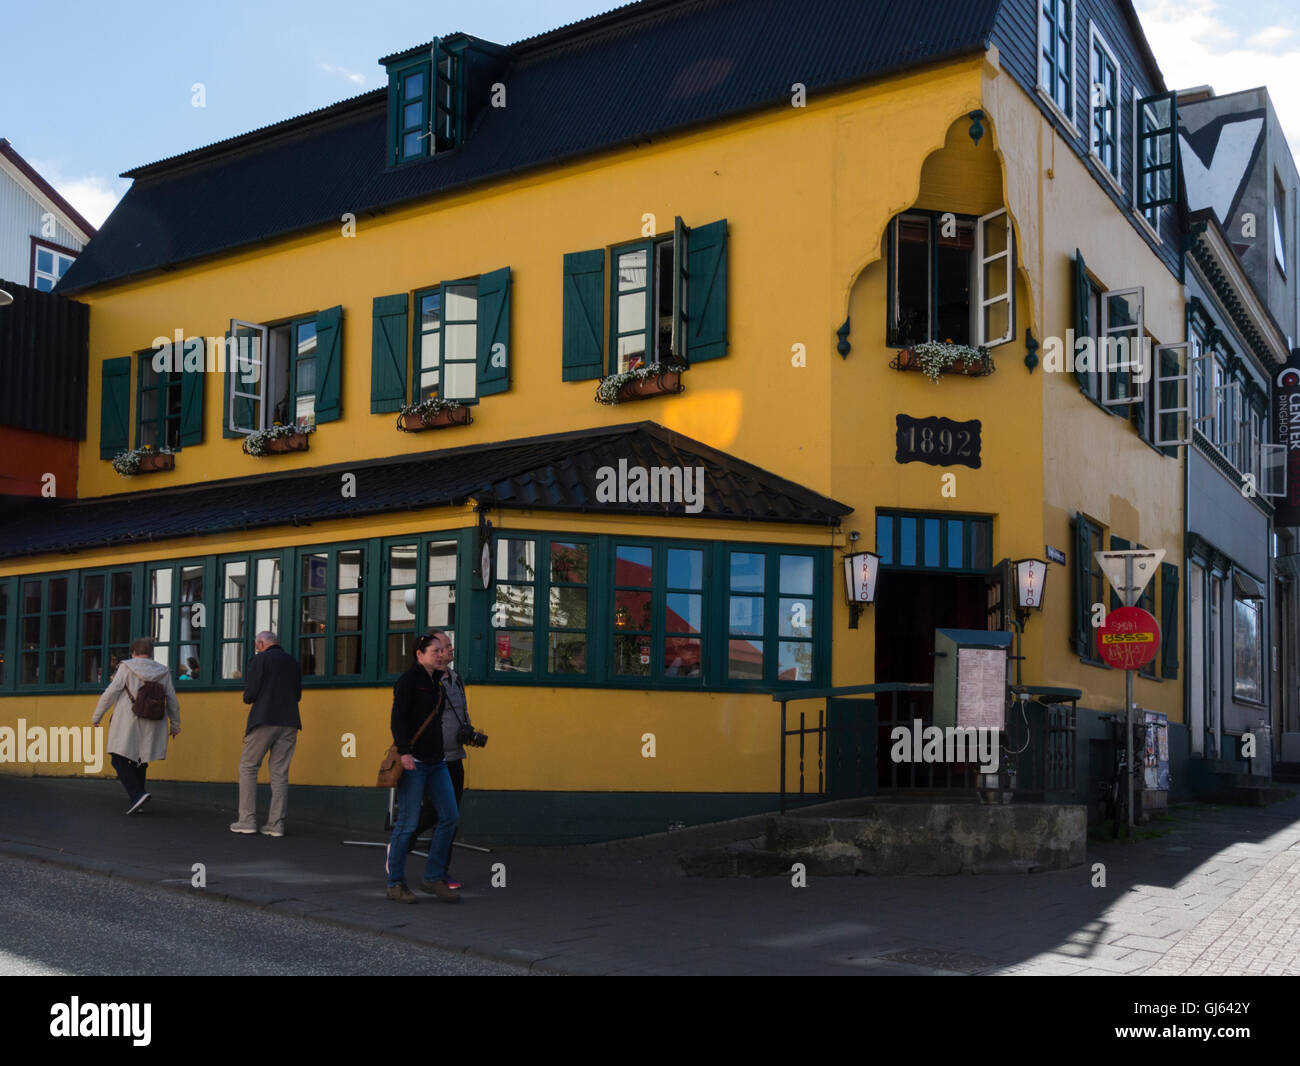 Italian restaurant in yellow building with green shuttered windows dating from 1892 in historic city centre Reykjavik - Stock Image